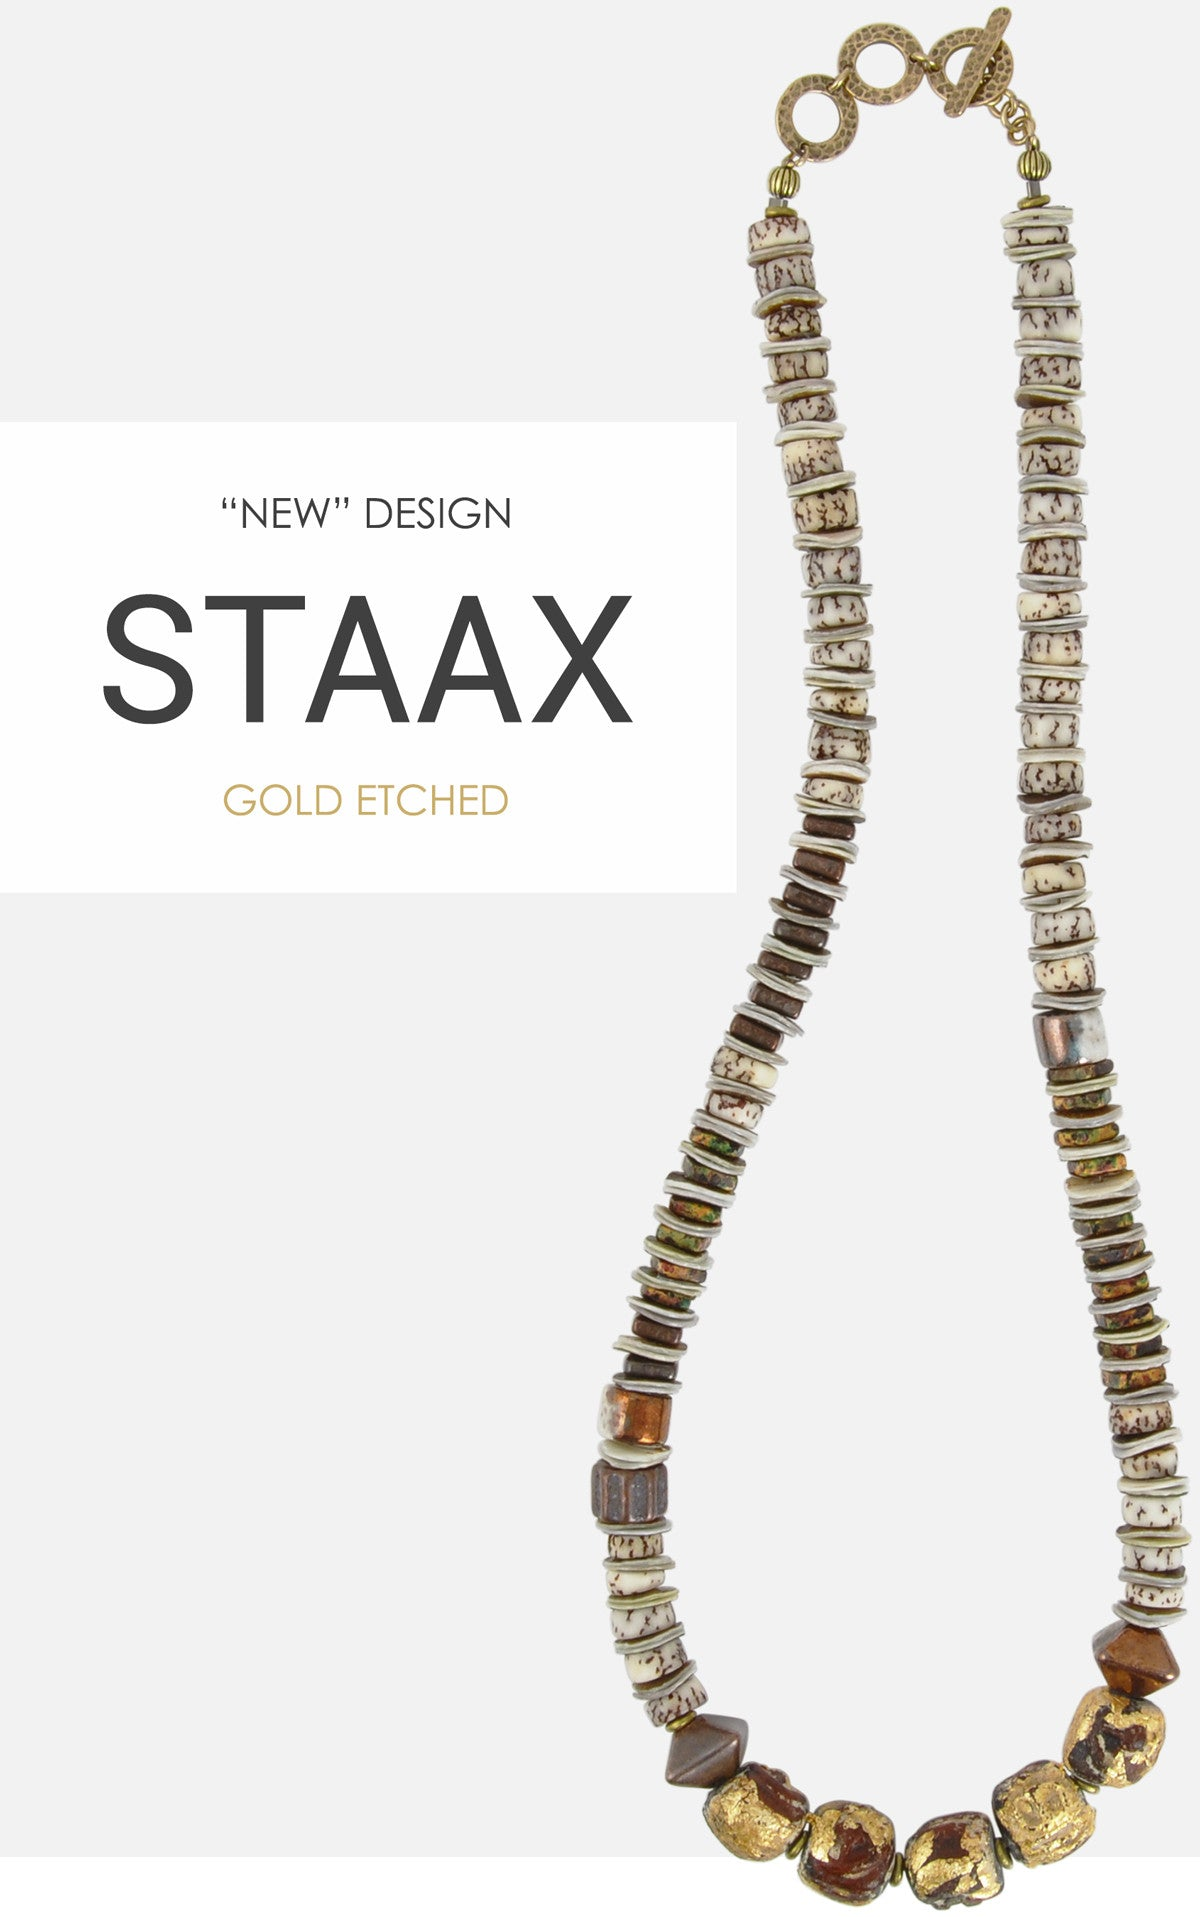 Staax Gold Etched Necklace Blog Tamara Scott Designs